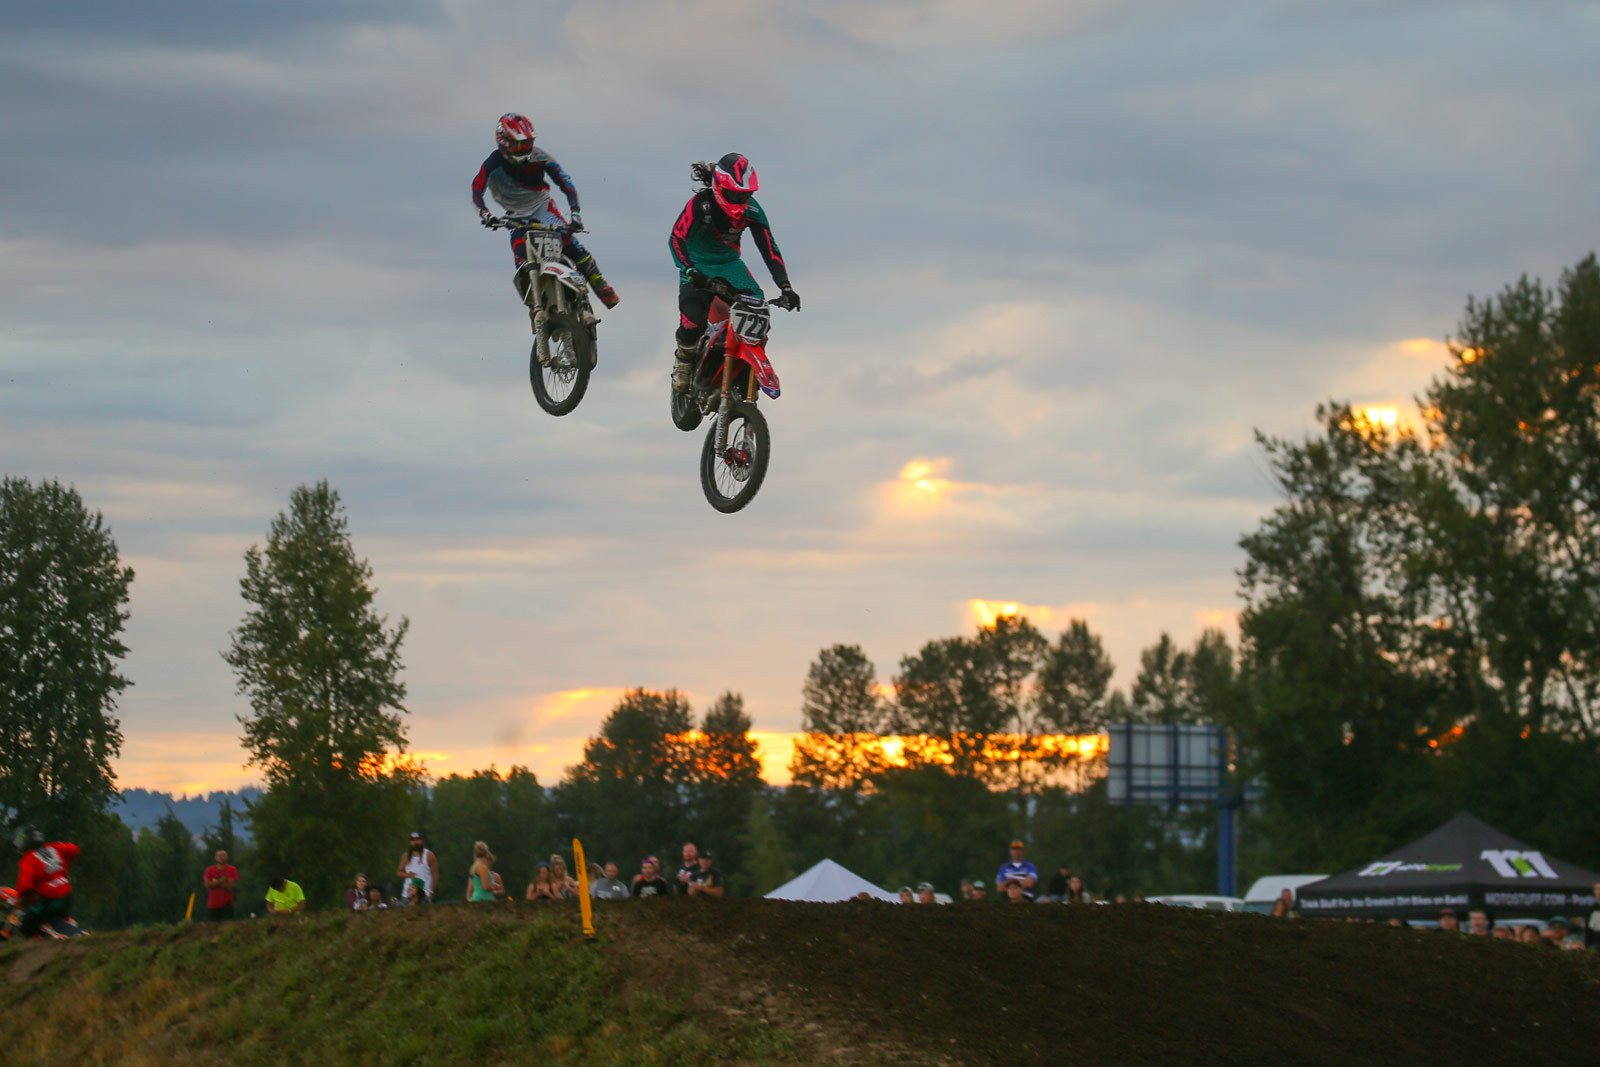 Adam Enticknap and Gared Steinke - Vital MX Pit Bits: Washougal - Motocross Pictures - Vital MX